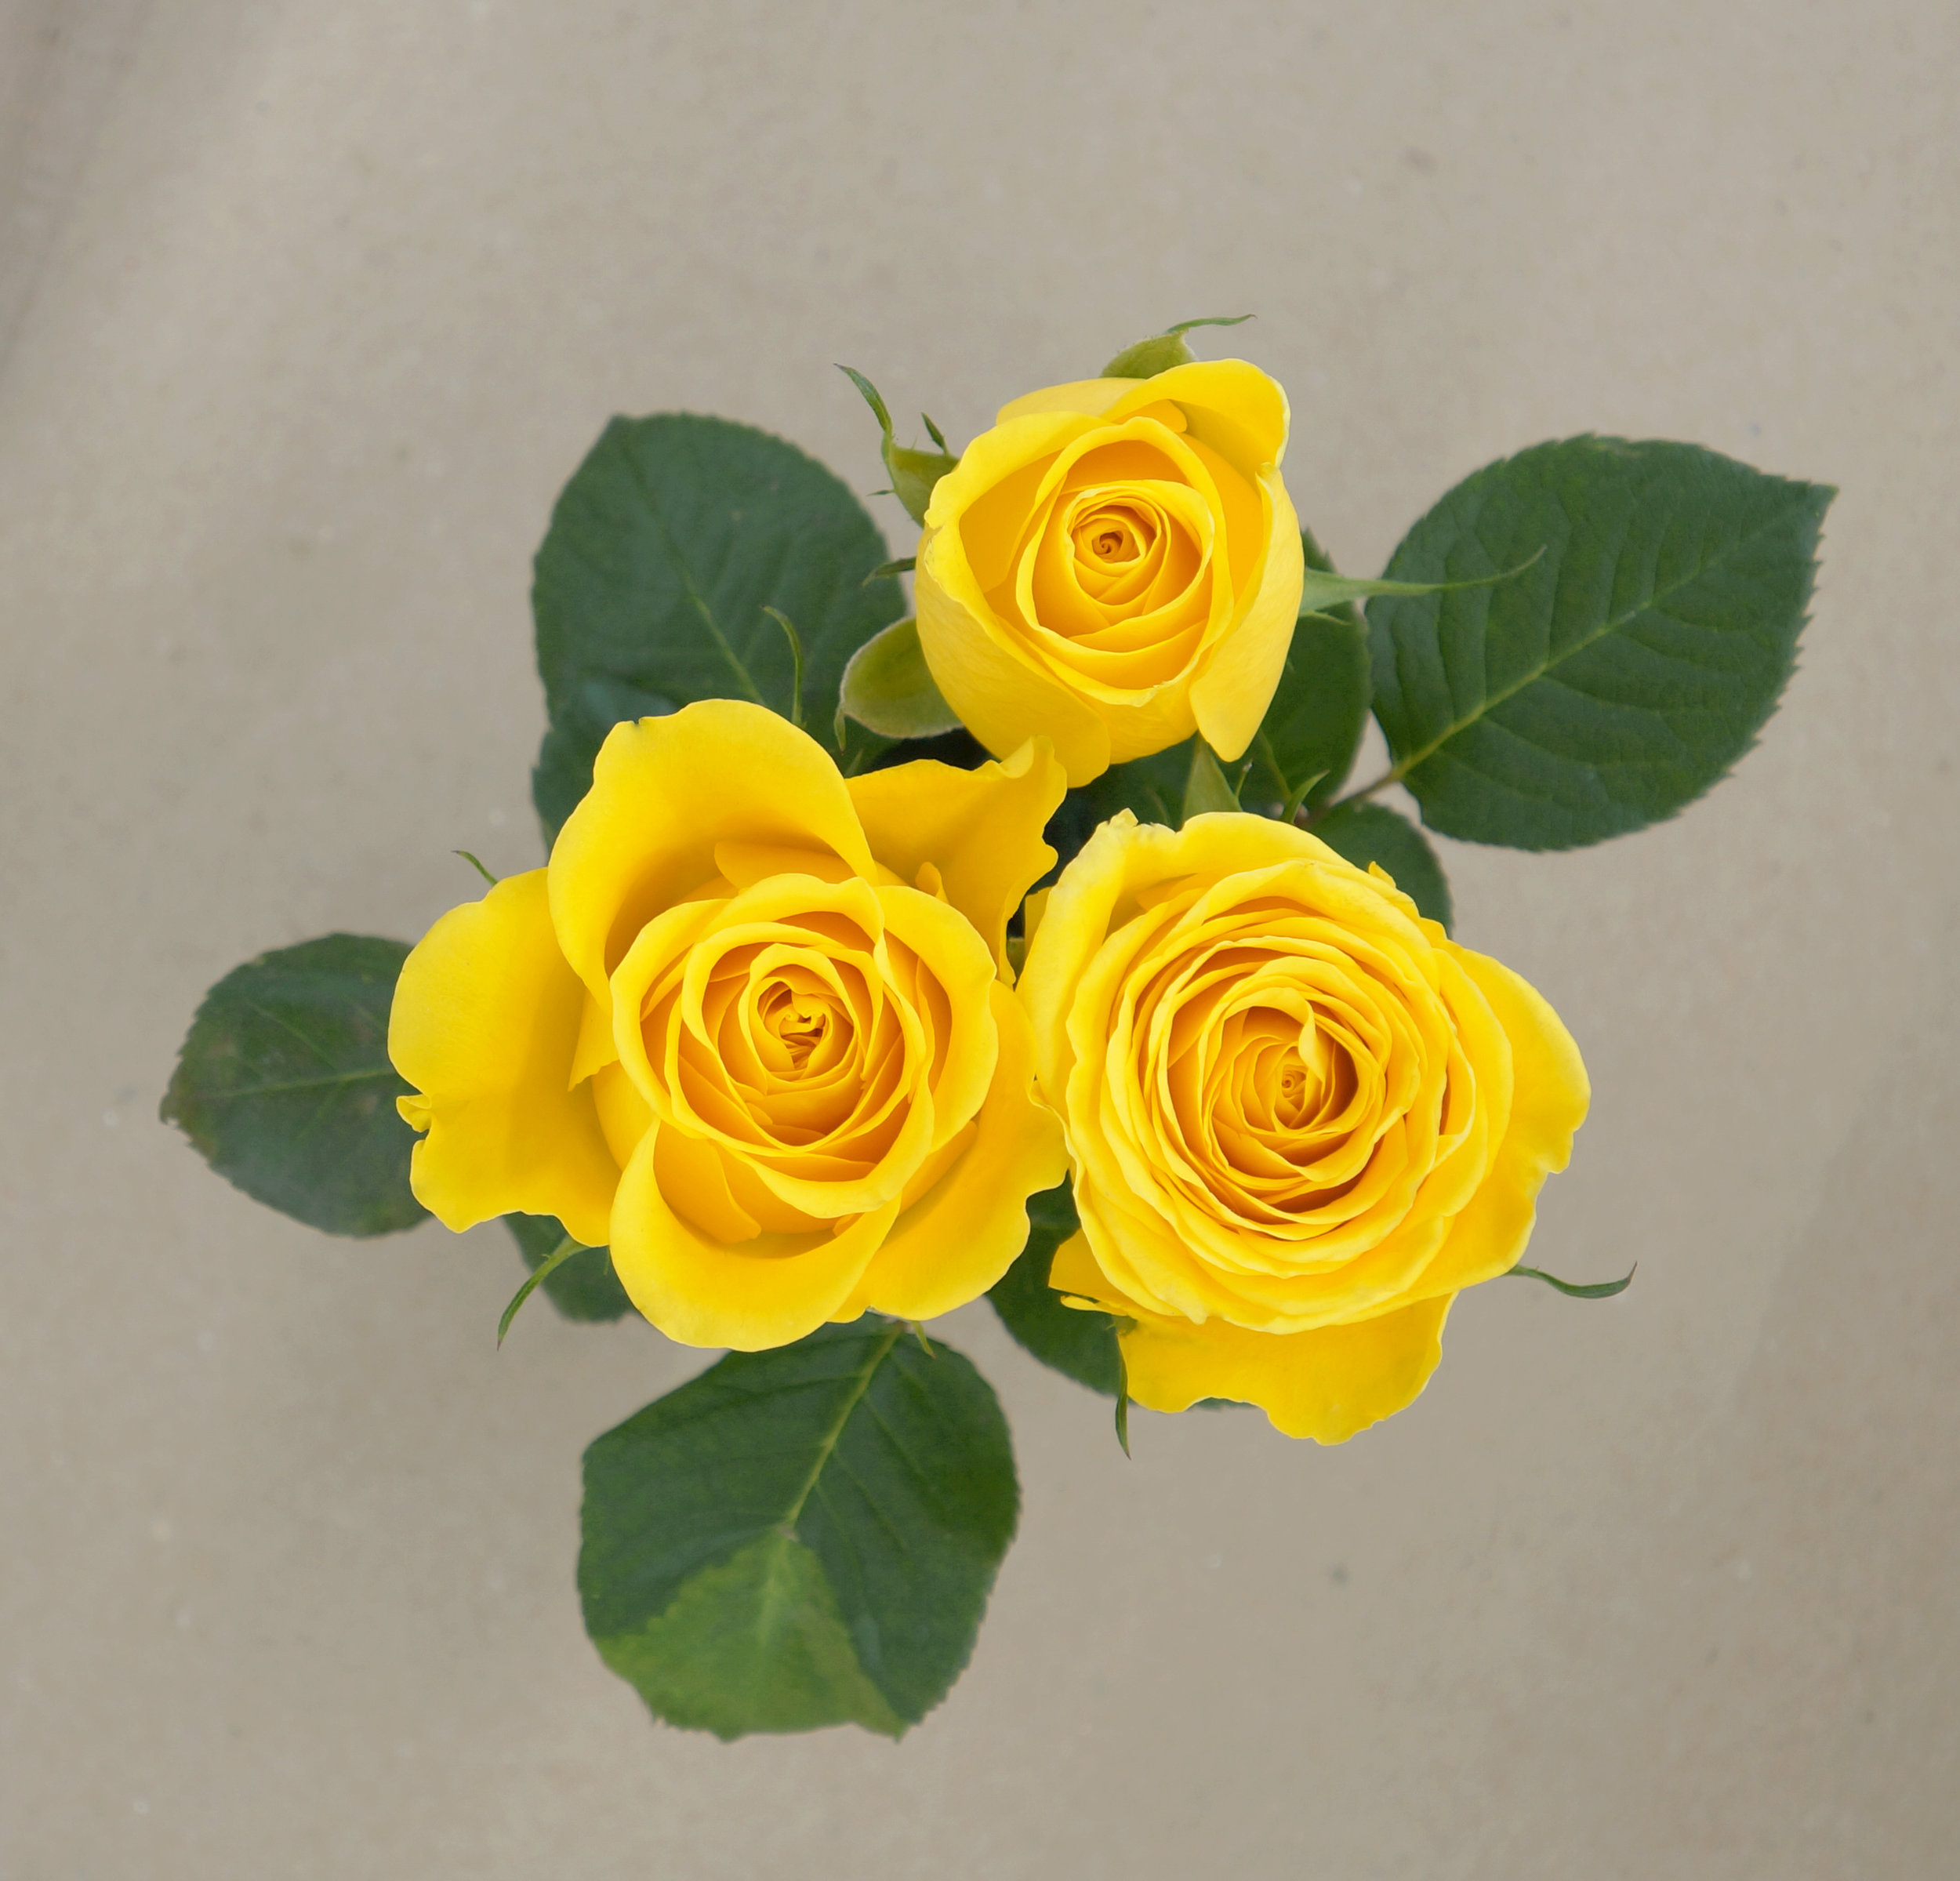 Goldstar - Our brightest yellow